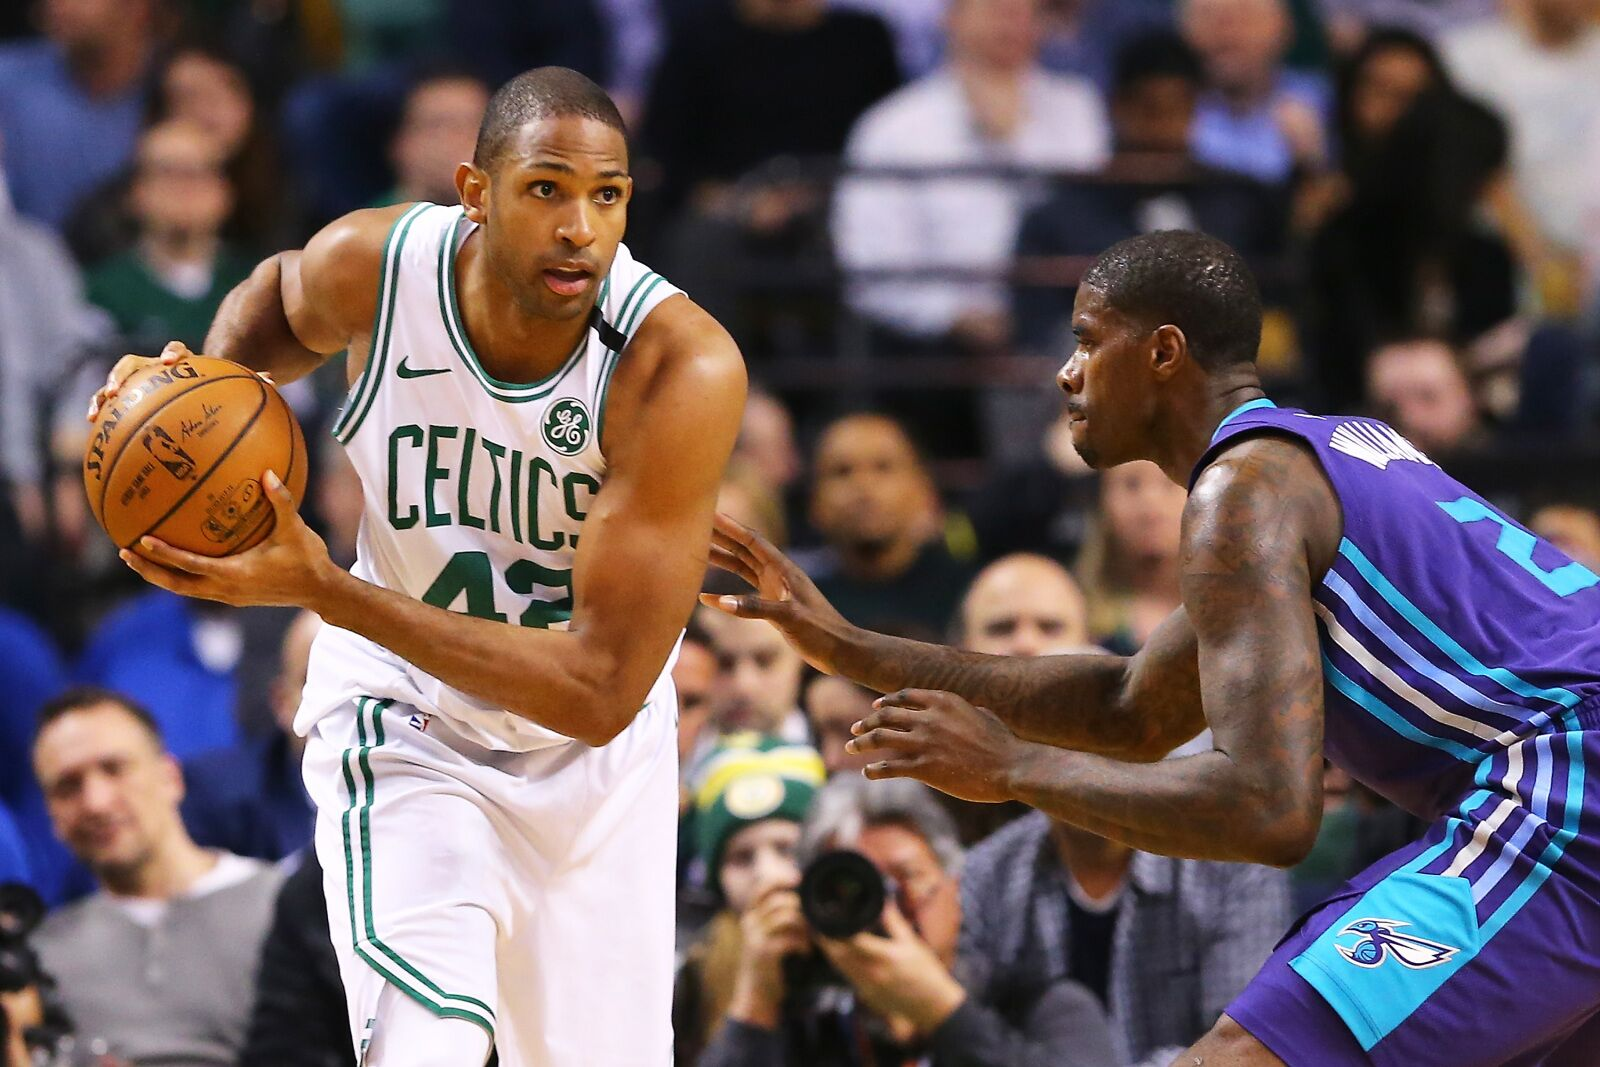 Charlotte Hornets: Is there a chance to sign Al Horford in Free Agency?